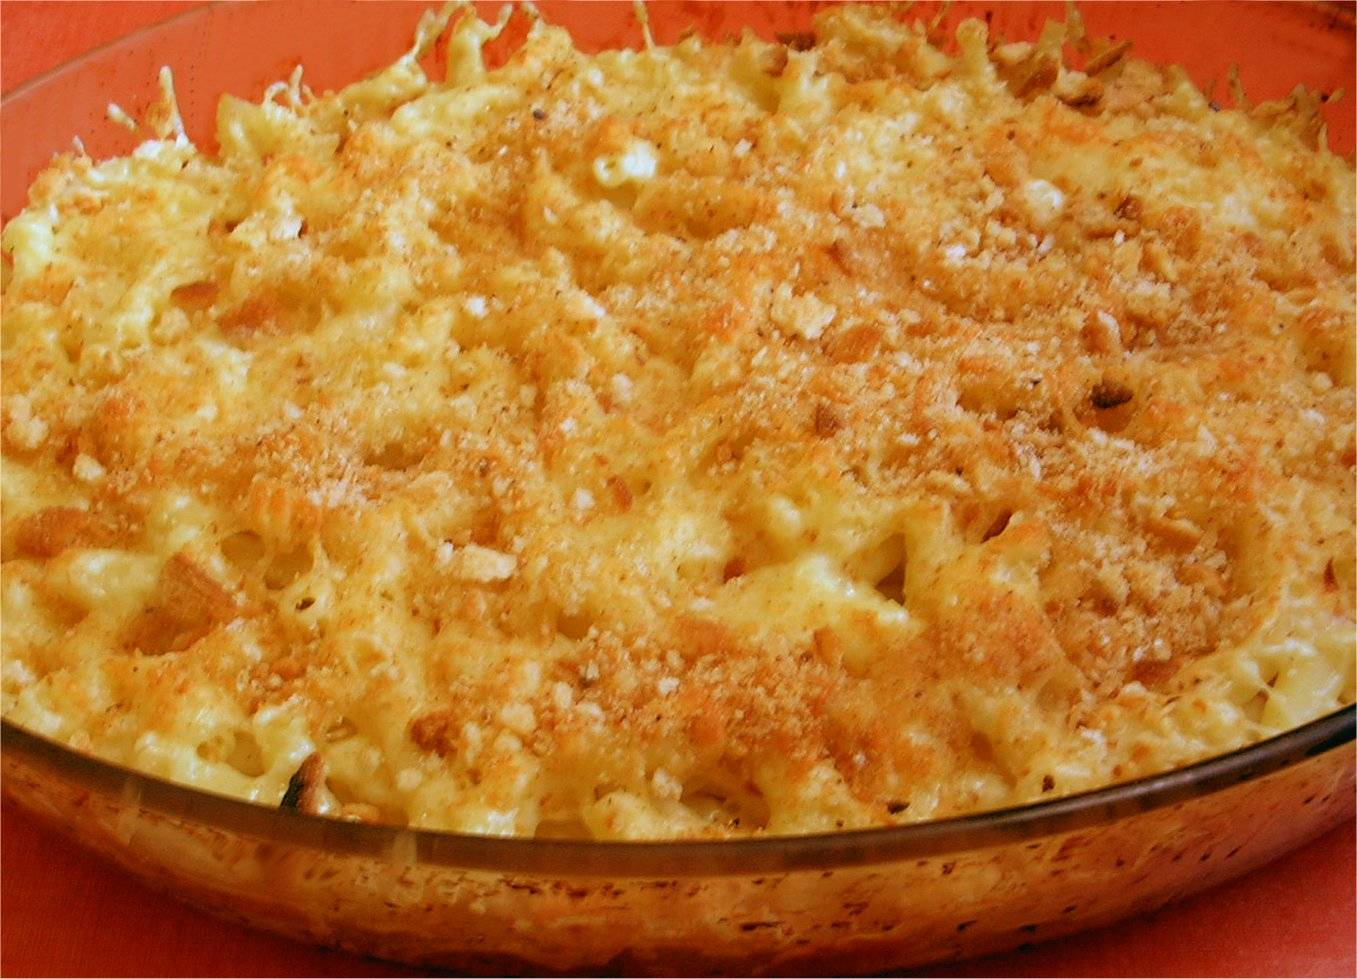 http://recettessimples.fr/images/Gratin%20macaroni%201.jpg